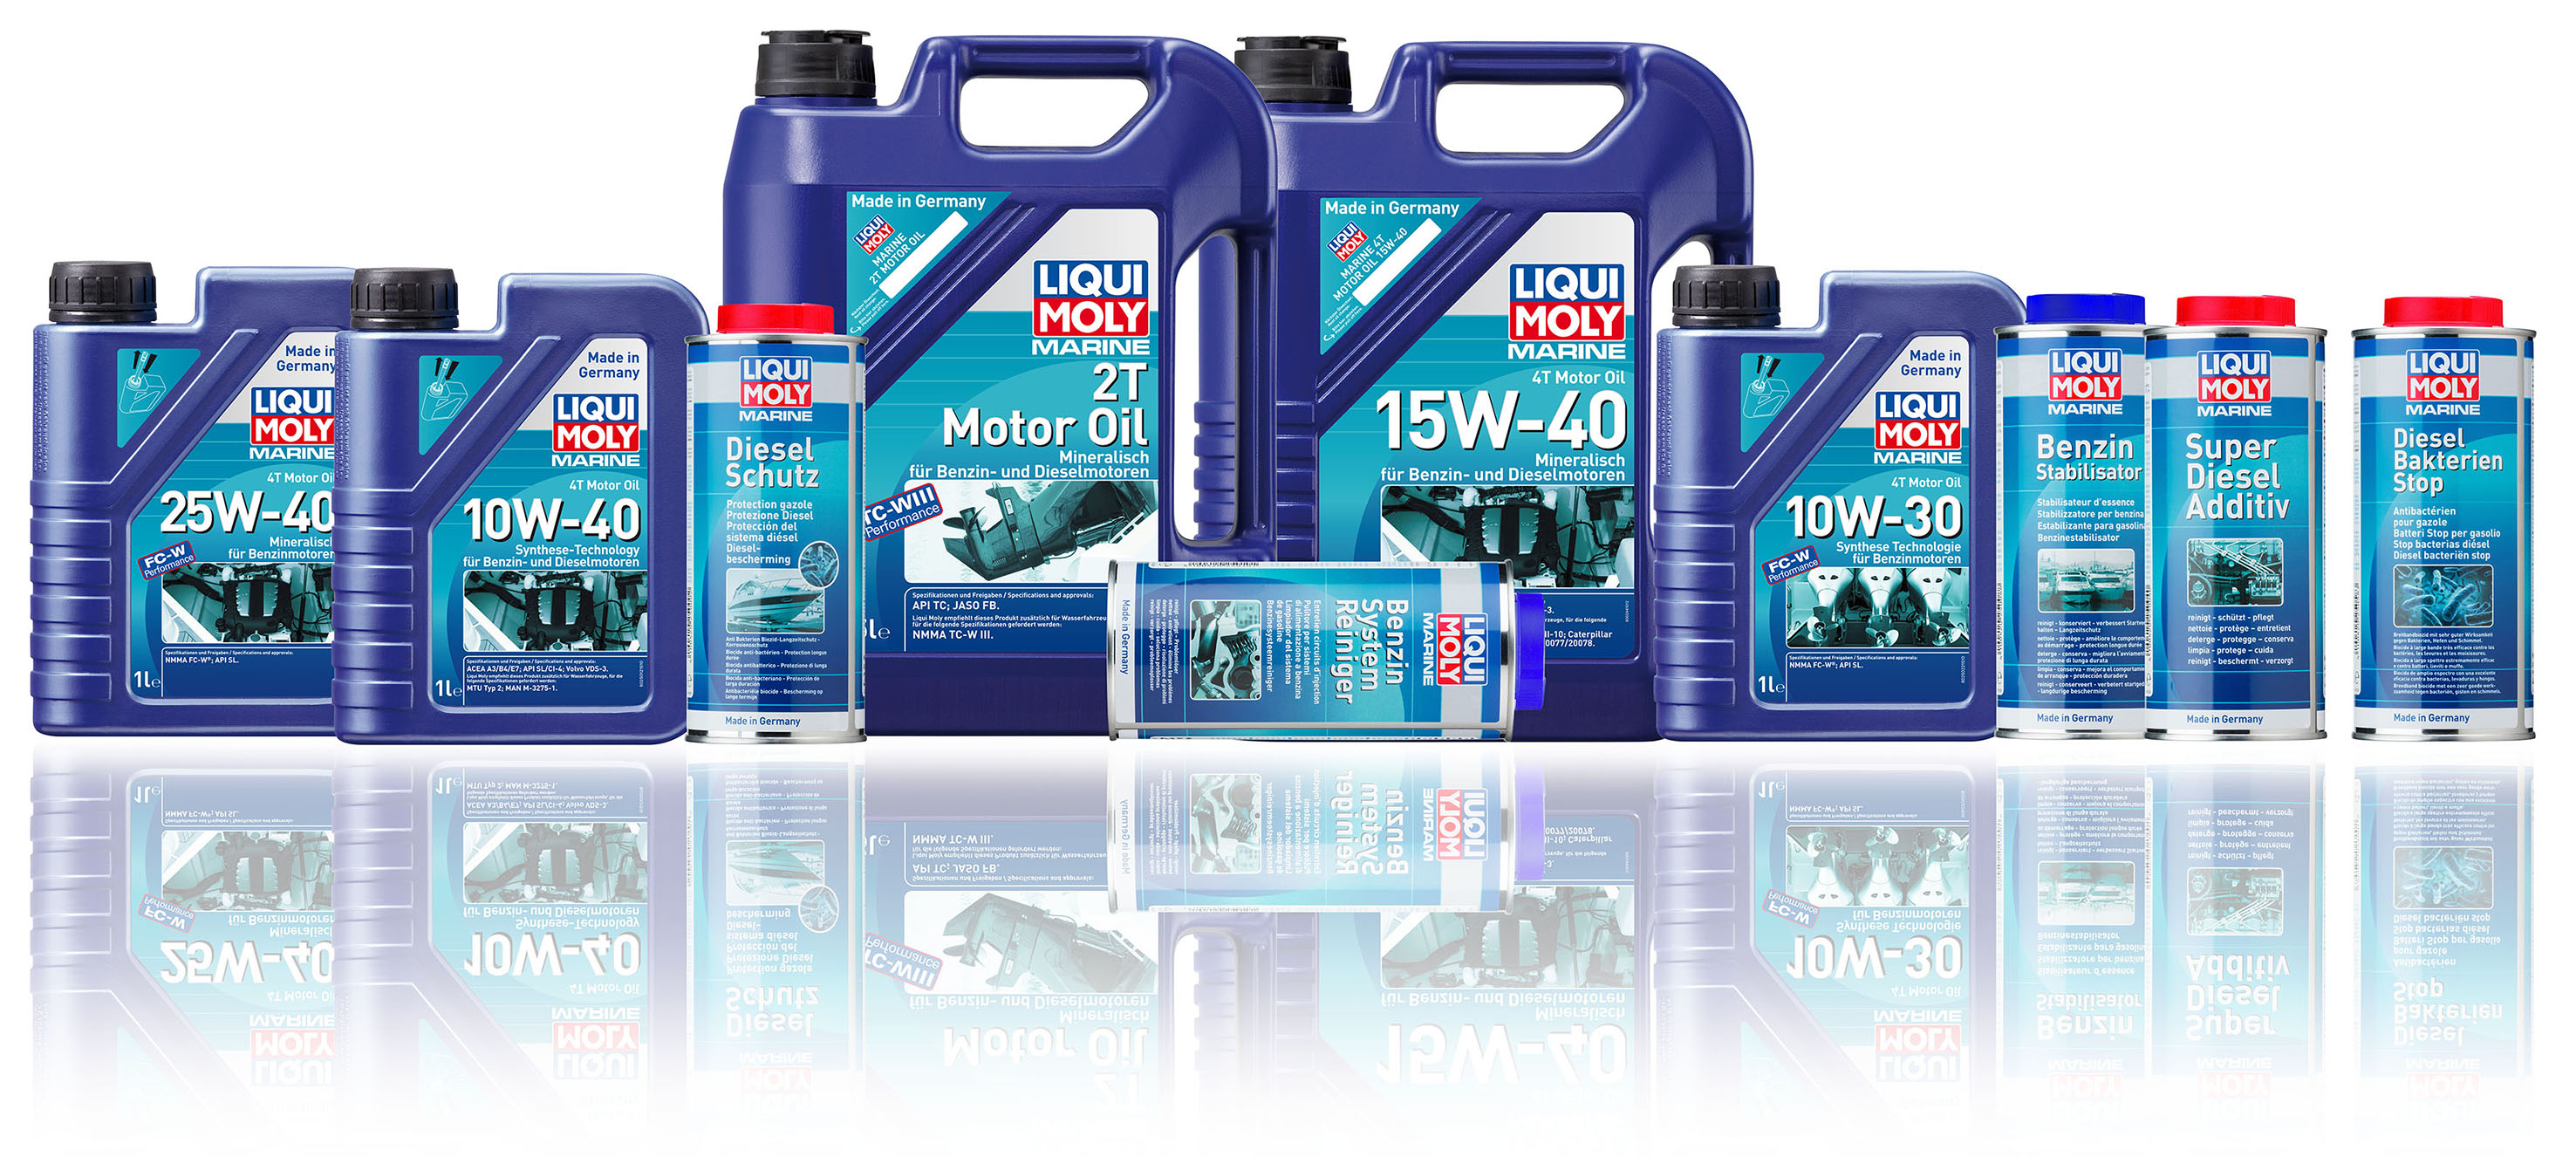 Motor oils, additives and other chemical helpers: LIQUI MOLY